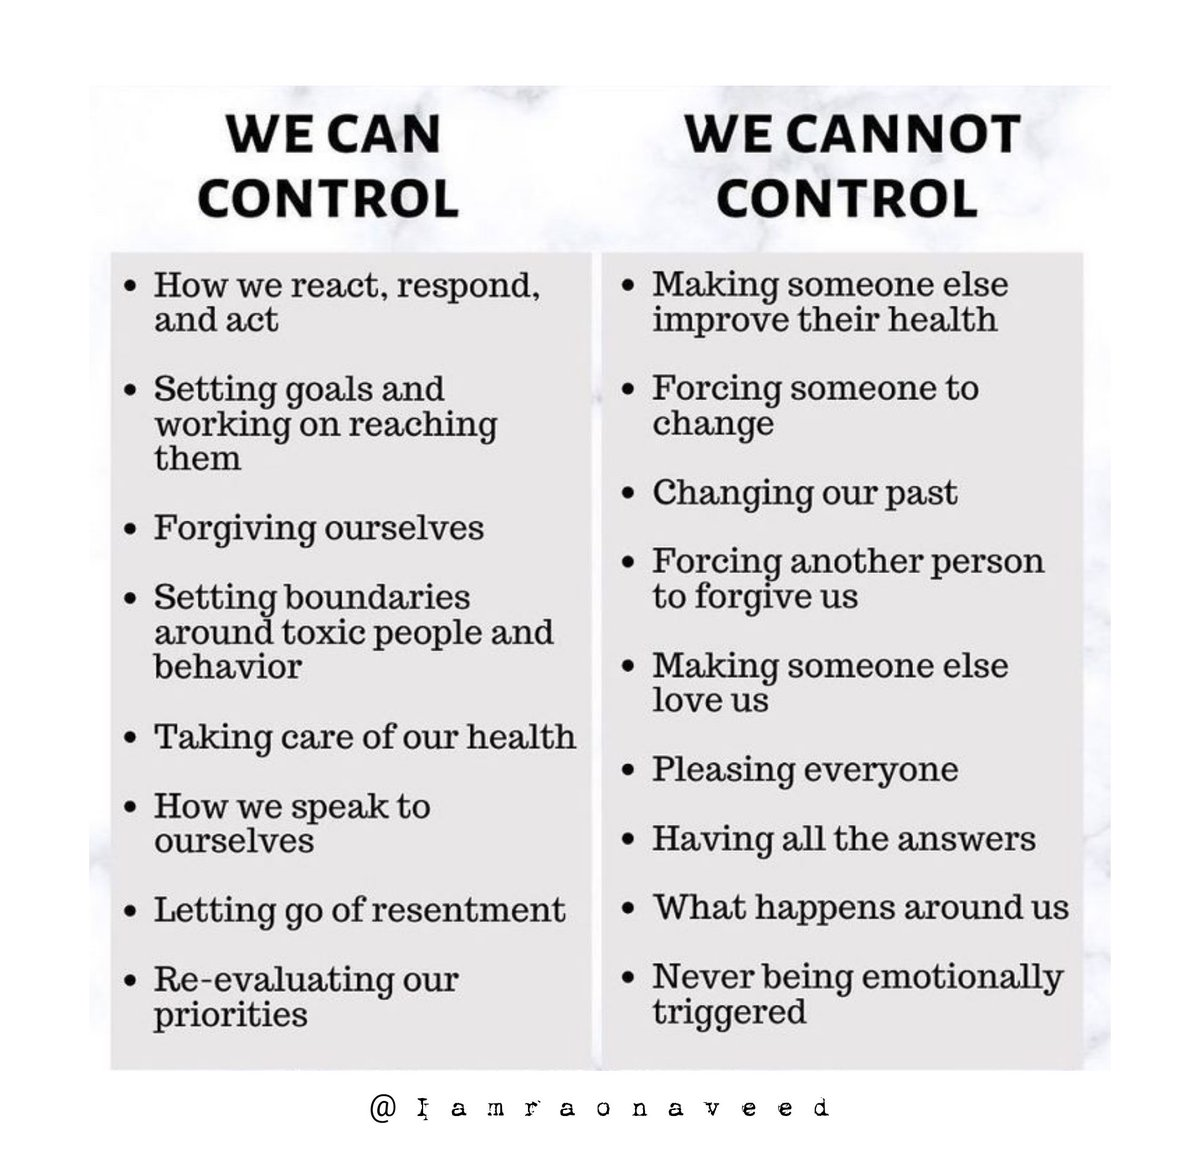 Things which we can or can't control. #FridayThoughts #FridayMotivation #MotivationalQuotes #Motivation #motivational #Iamraonaveed #thoughtoftheday